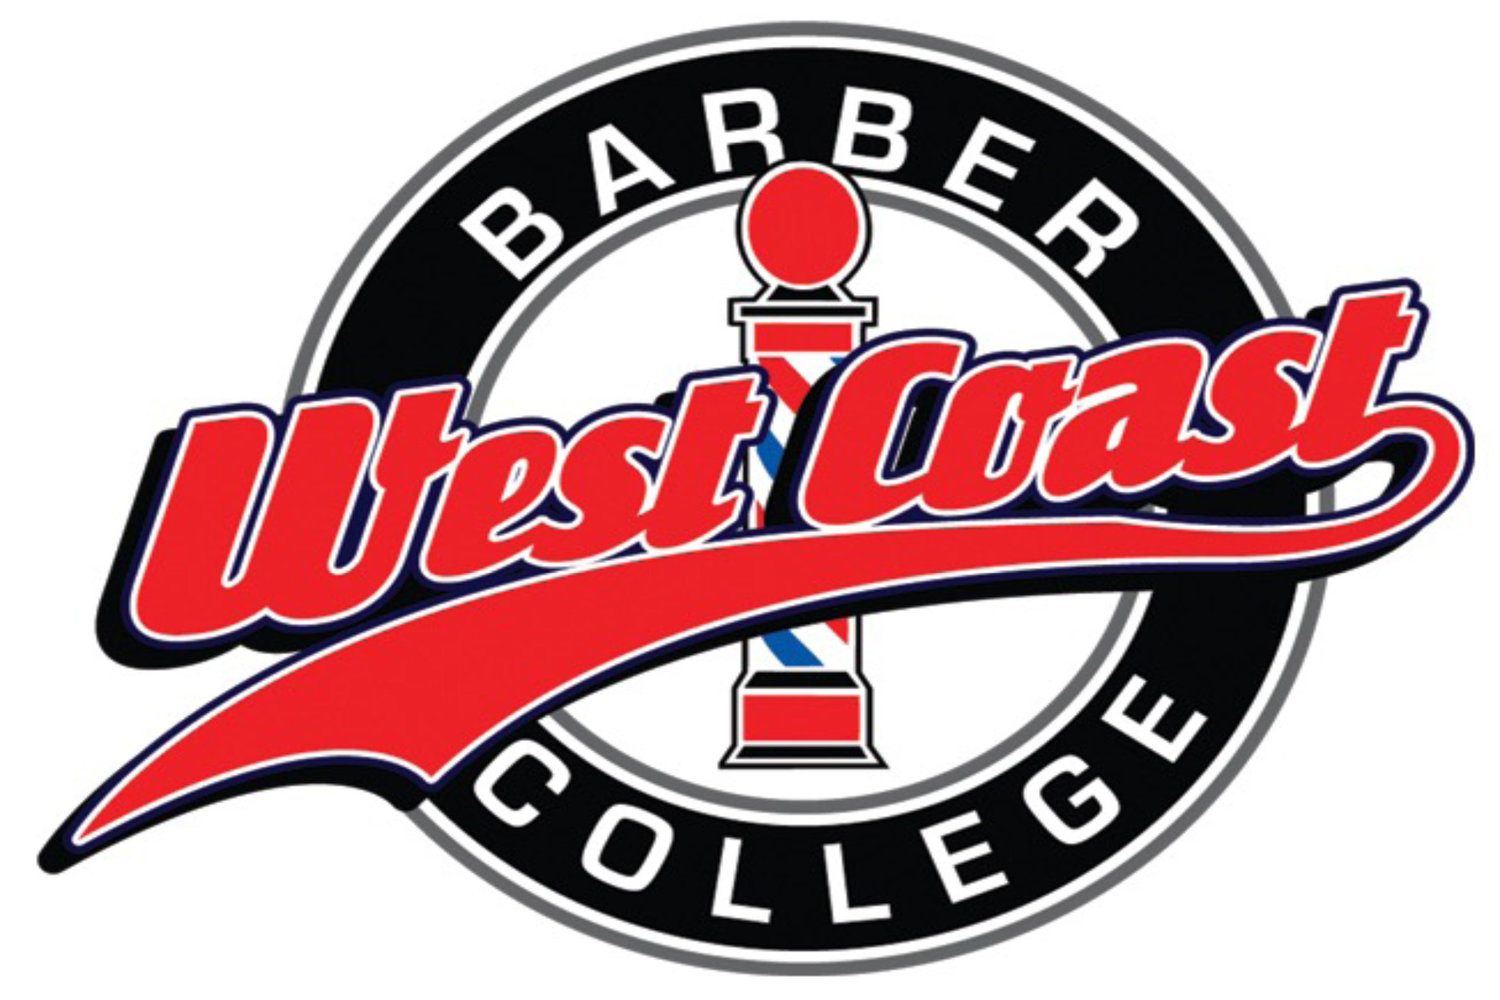 West Coast Barber College